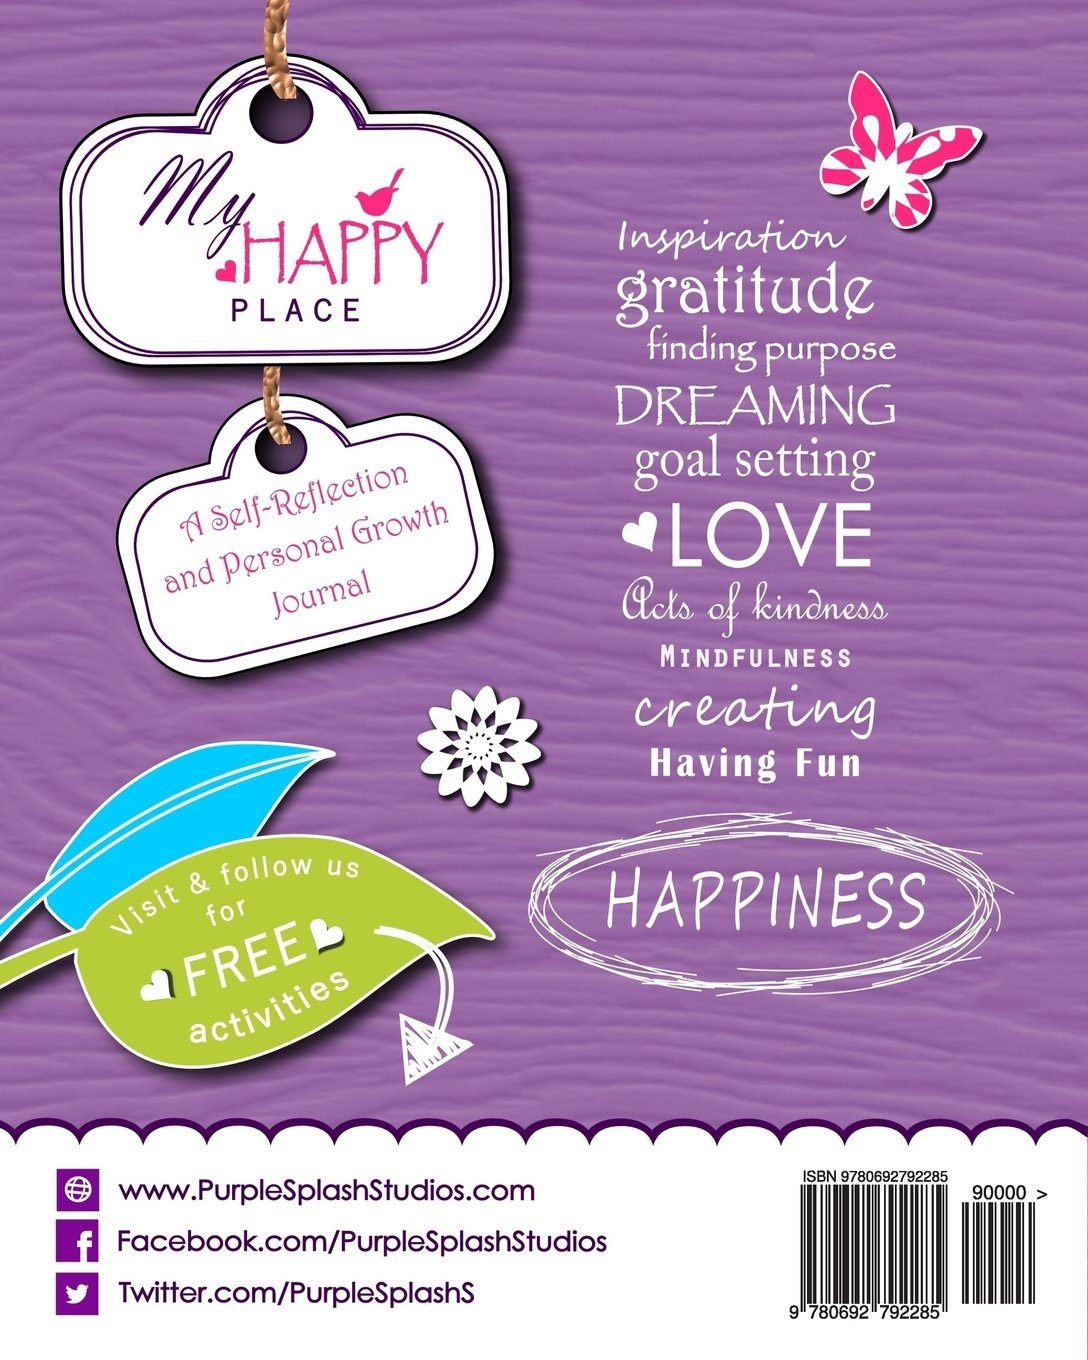 My Happy Place: A Children's Self-Reflection and Personal Growth Journal  with Creative Exercises, Fun Activities, Inspirational Quotes, Gratitude,  Dreaming, ...